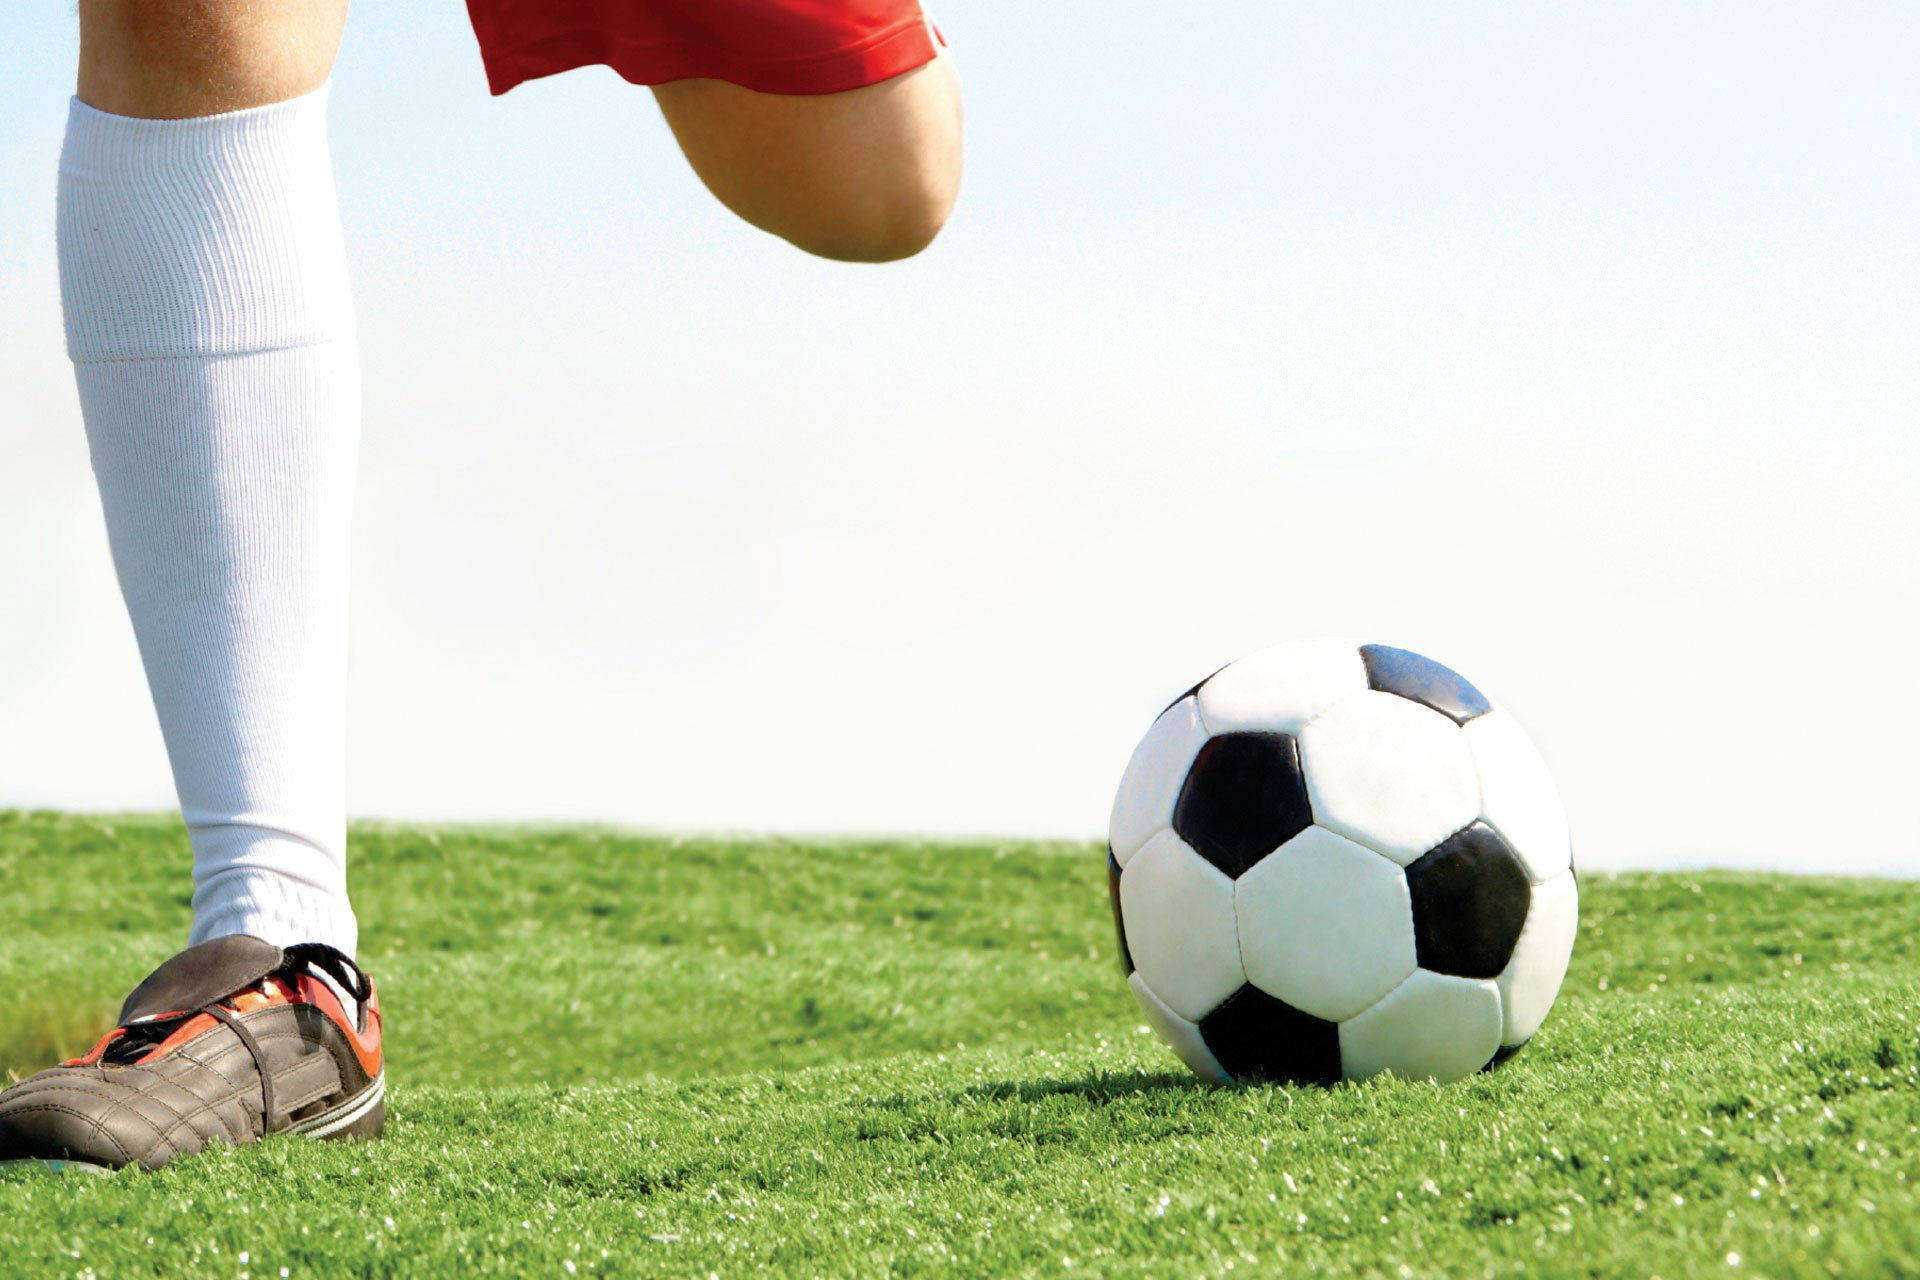 Glendale Sports Center - Adult Soccer